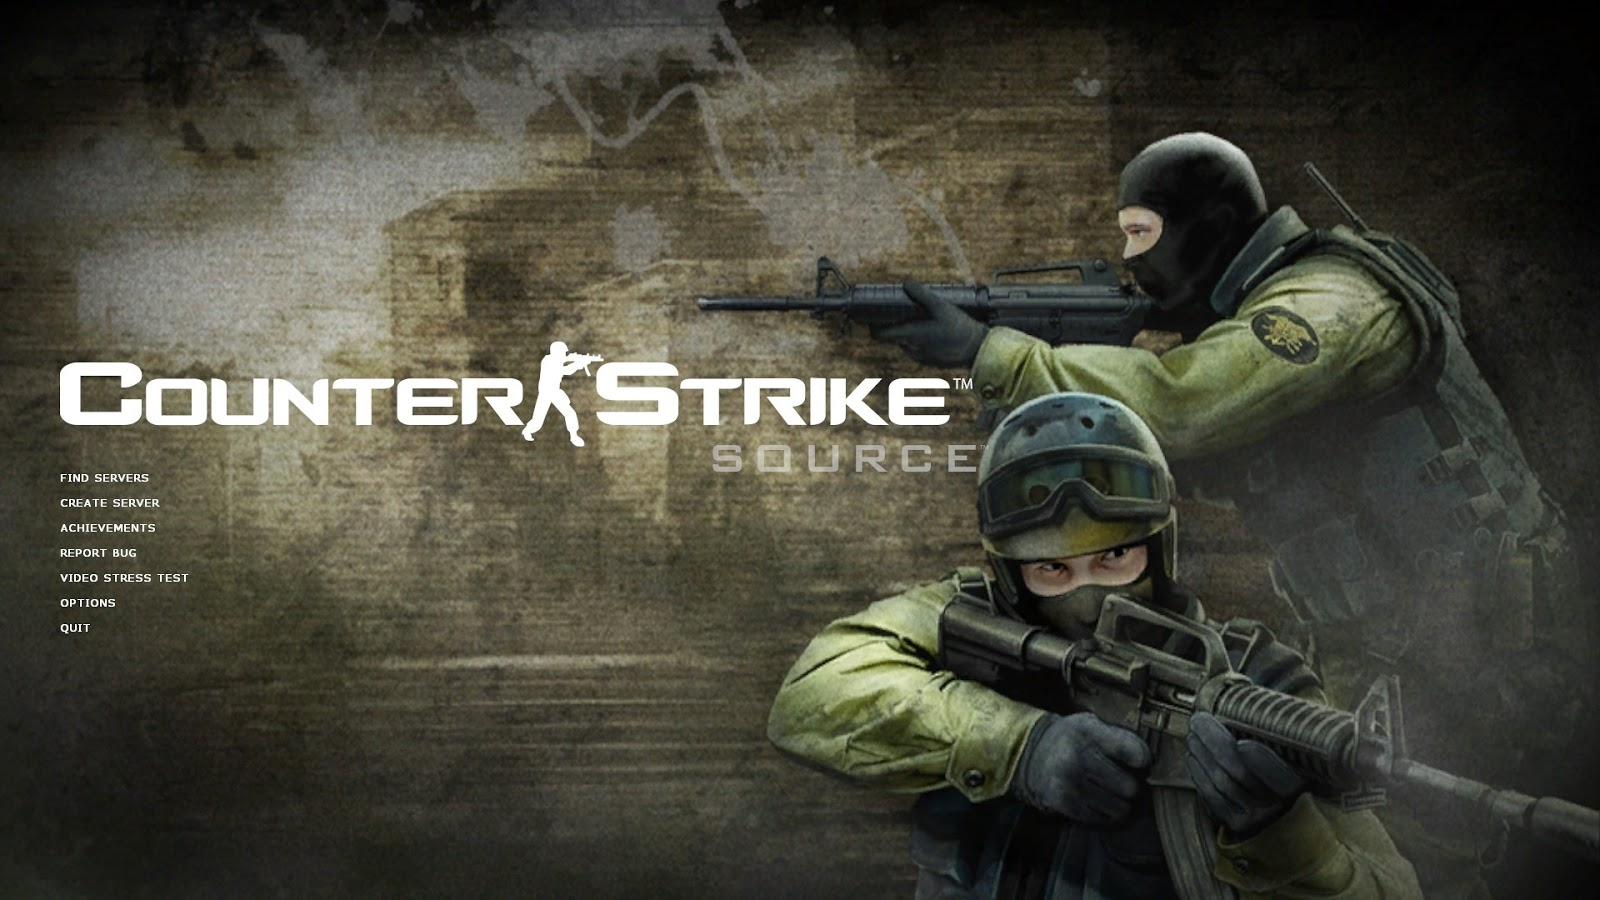 Counter-Strike: Source system requirements for PC | System